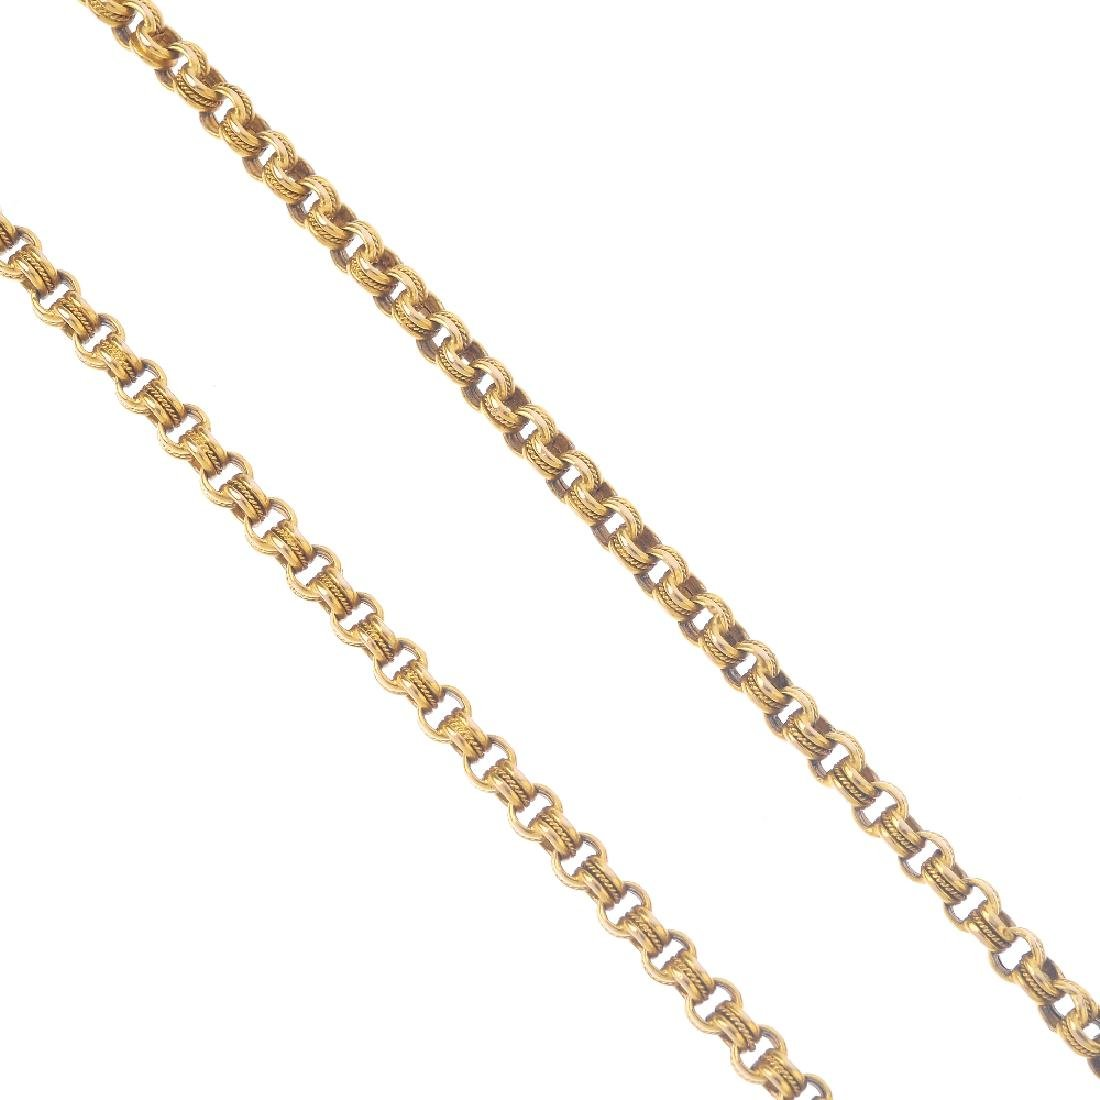 An early 20th century 15ct gold longuard chain. The